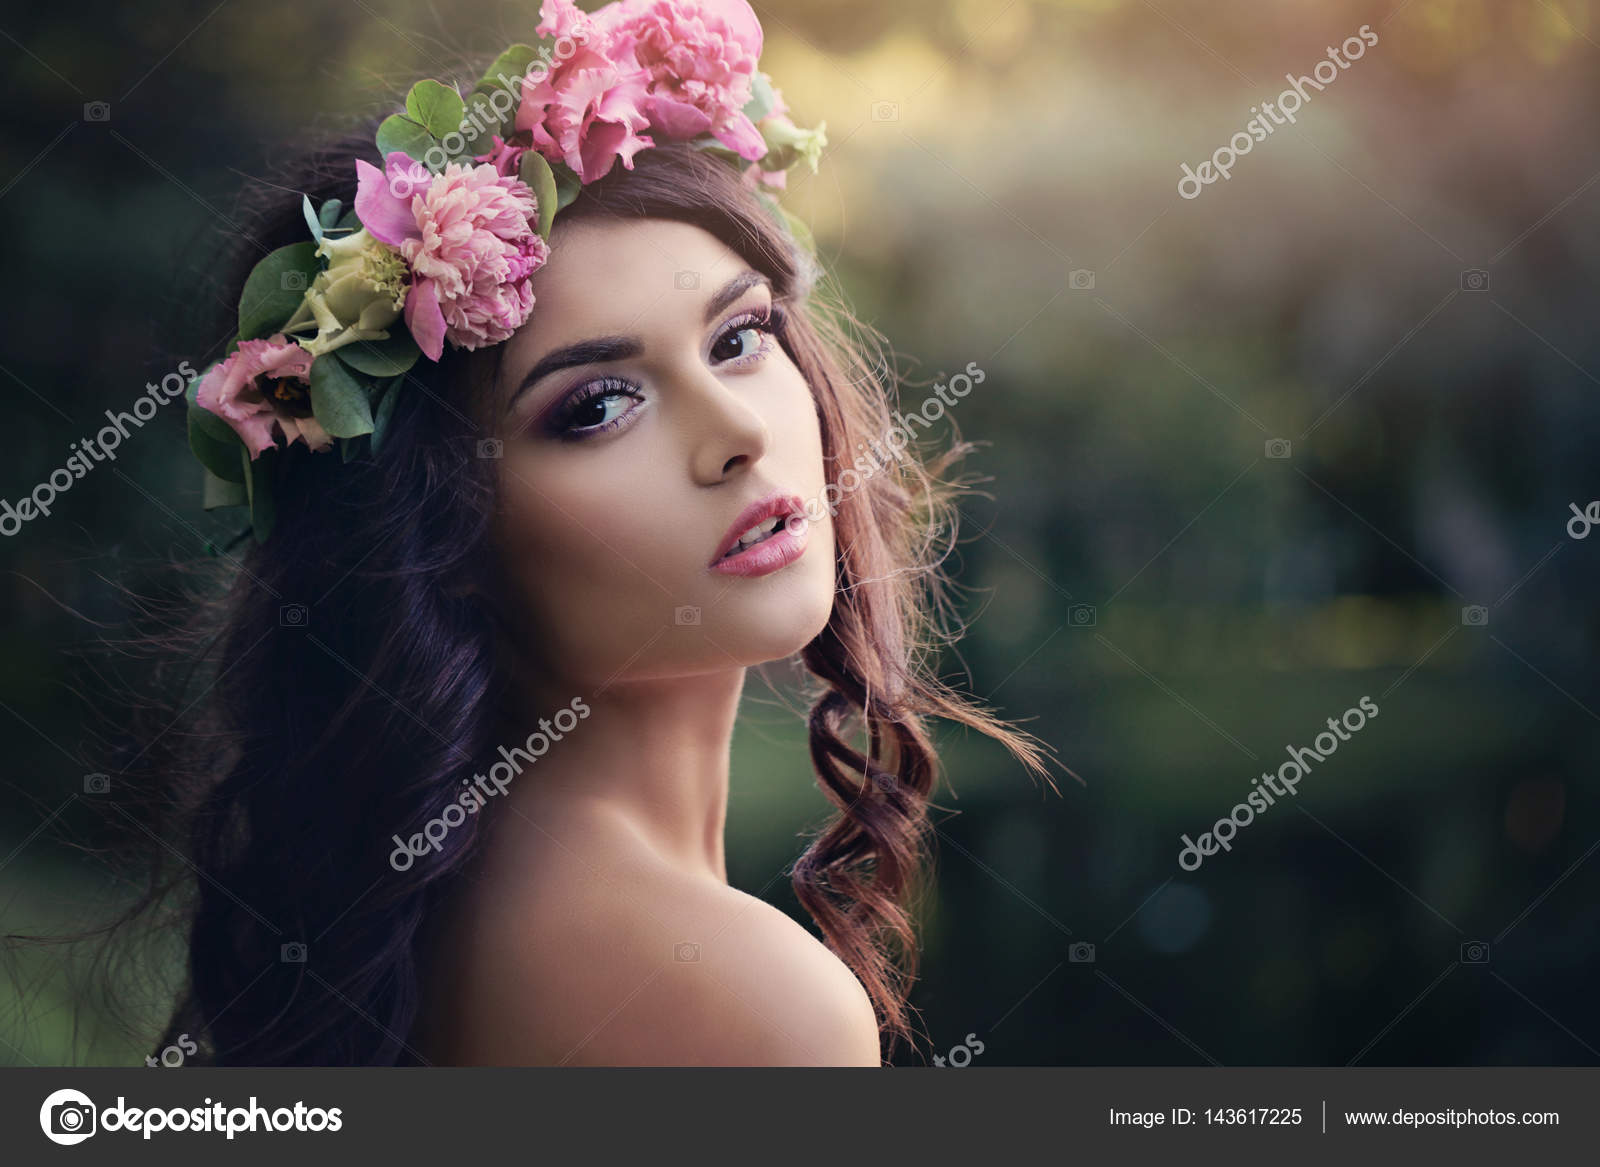 Beautiful woman with flowers wreath outdoors sunset in summer g beautiful woman with flowers wreath outdoors sunset in summer g stock photo izmirmasajfo Image collections